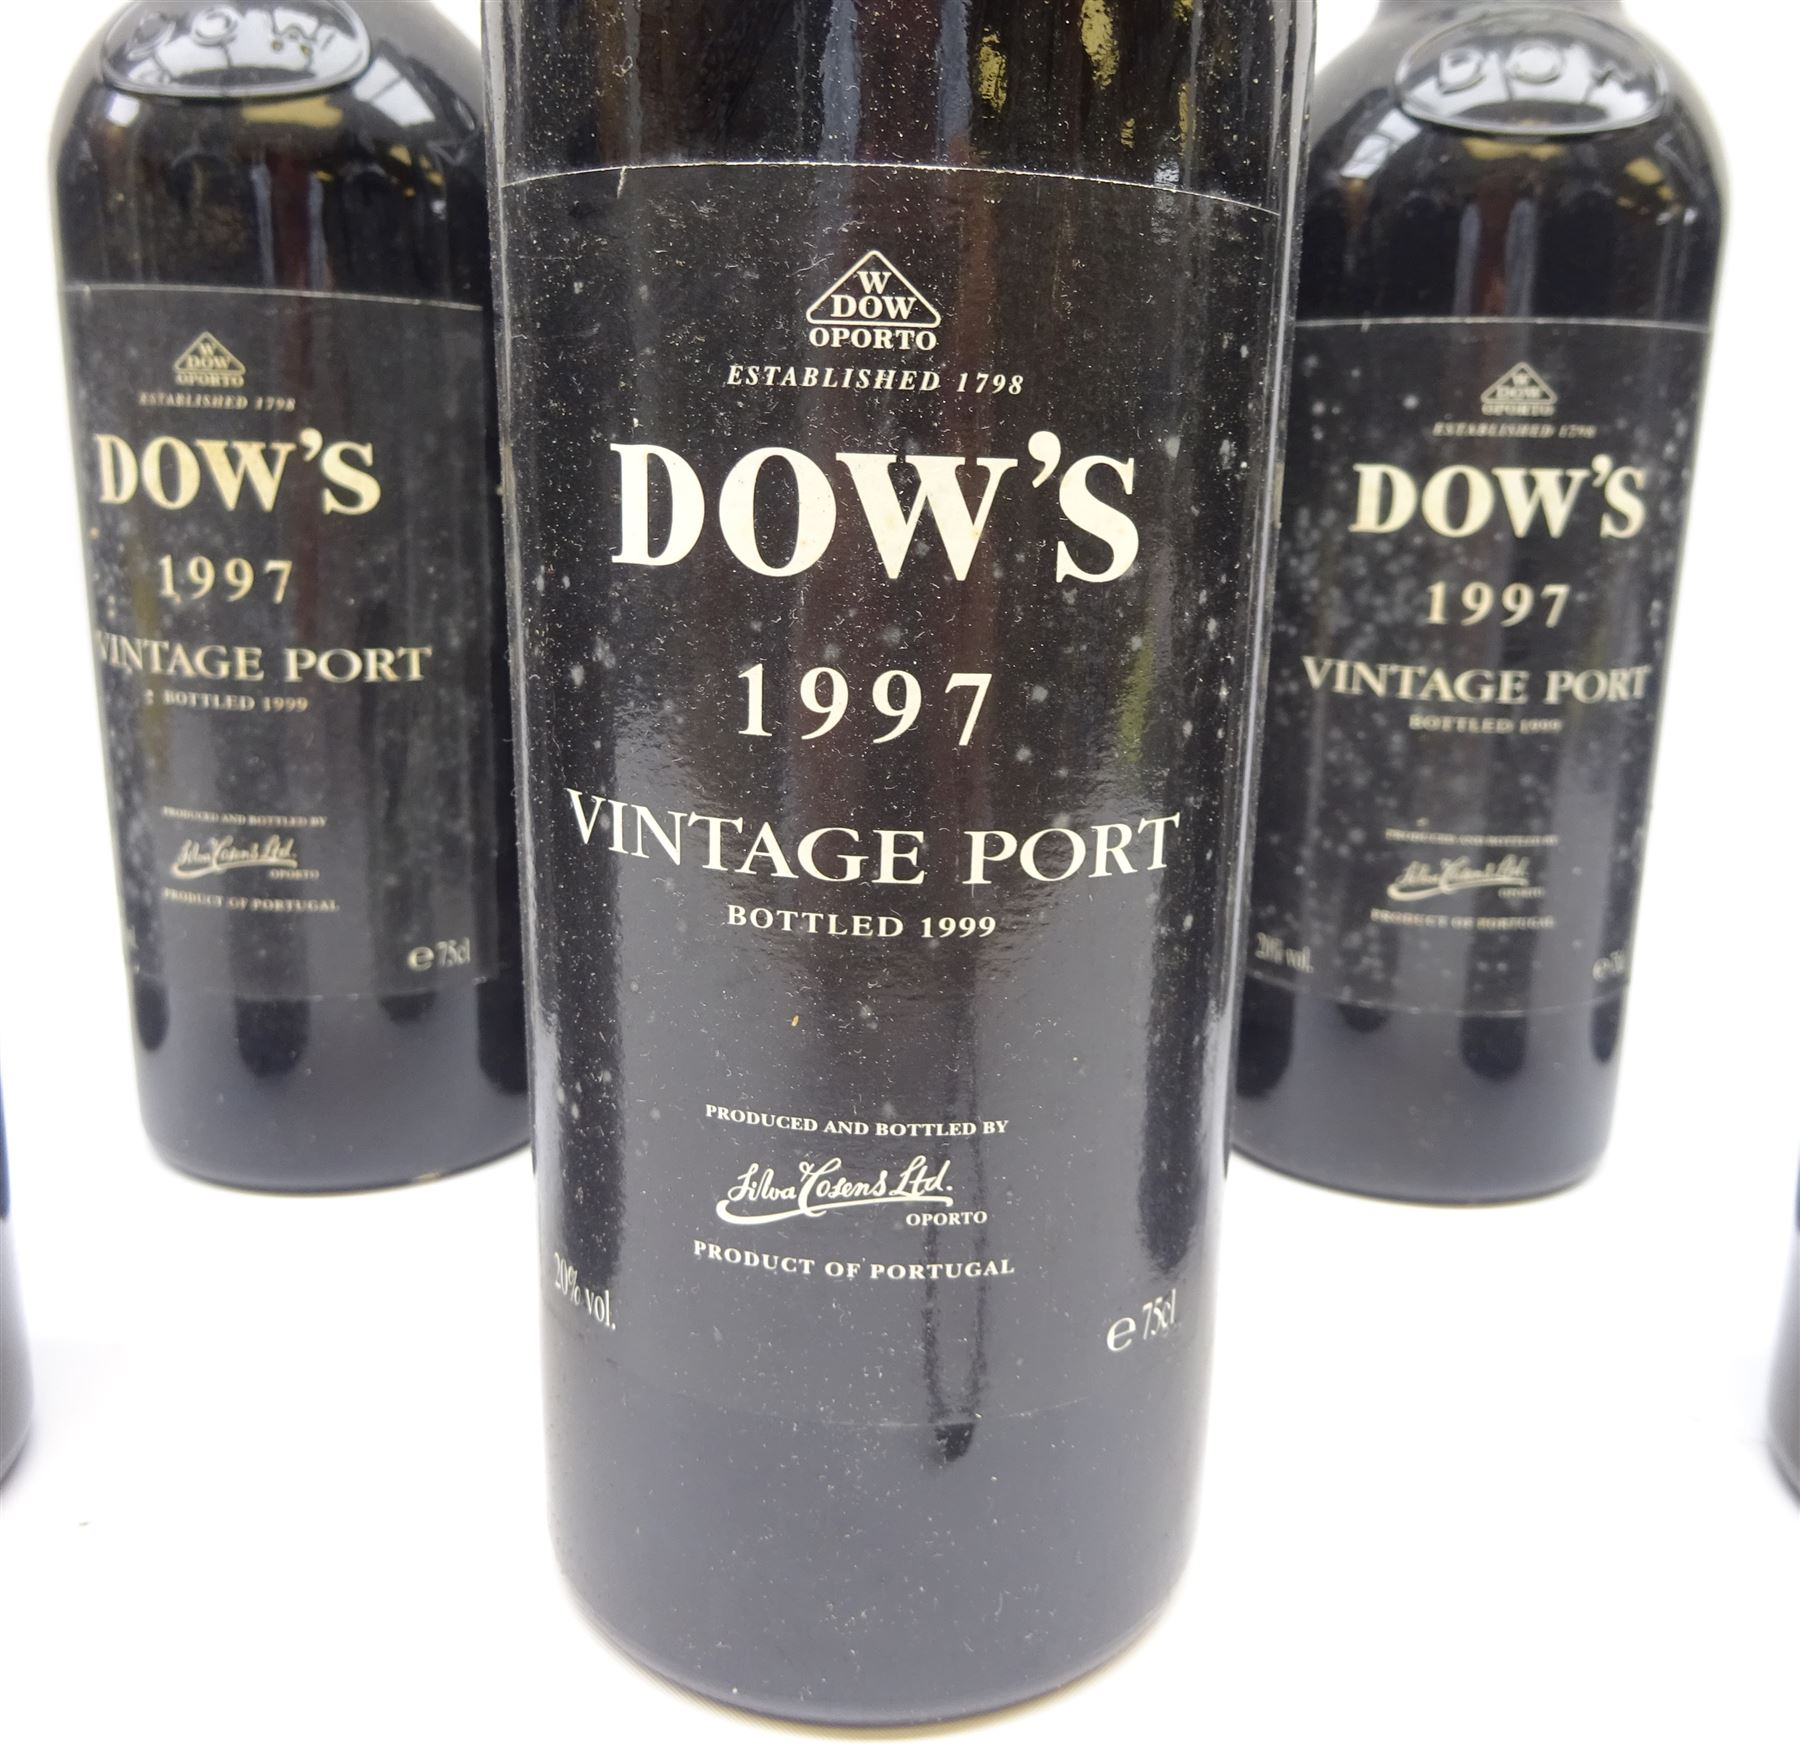 Dow's 1997 vintage port - Image 2 of 2